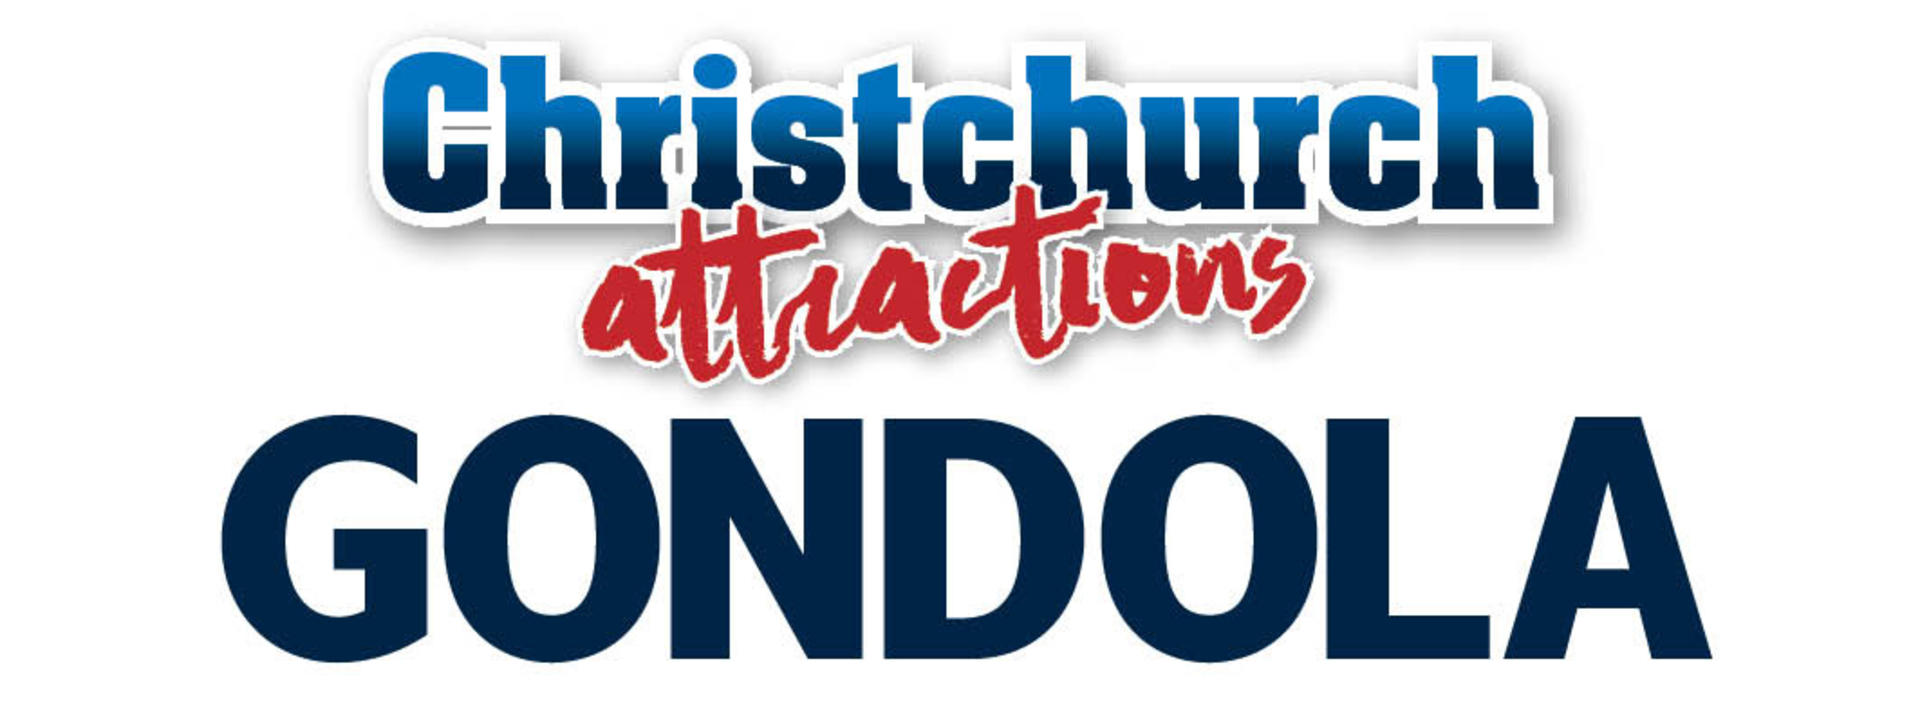 Logo: Christchurch Gondola